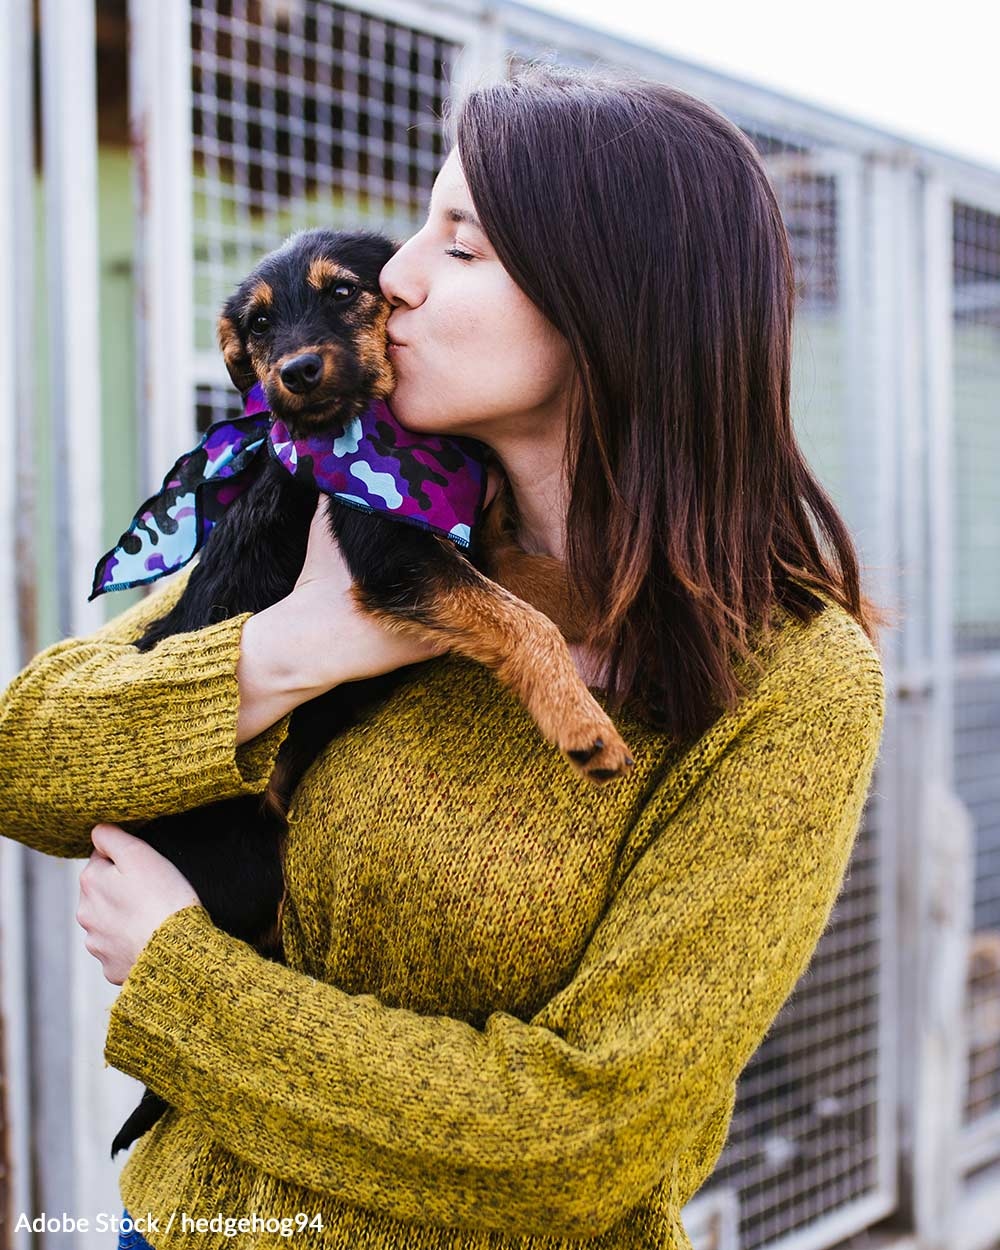 Adopt A Shelter Pet Month is observed in October.